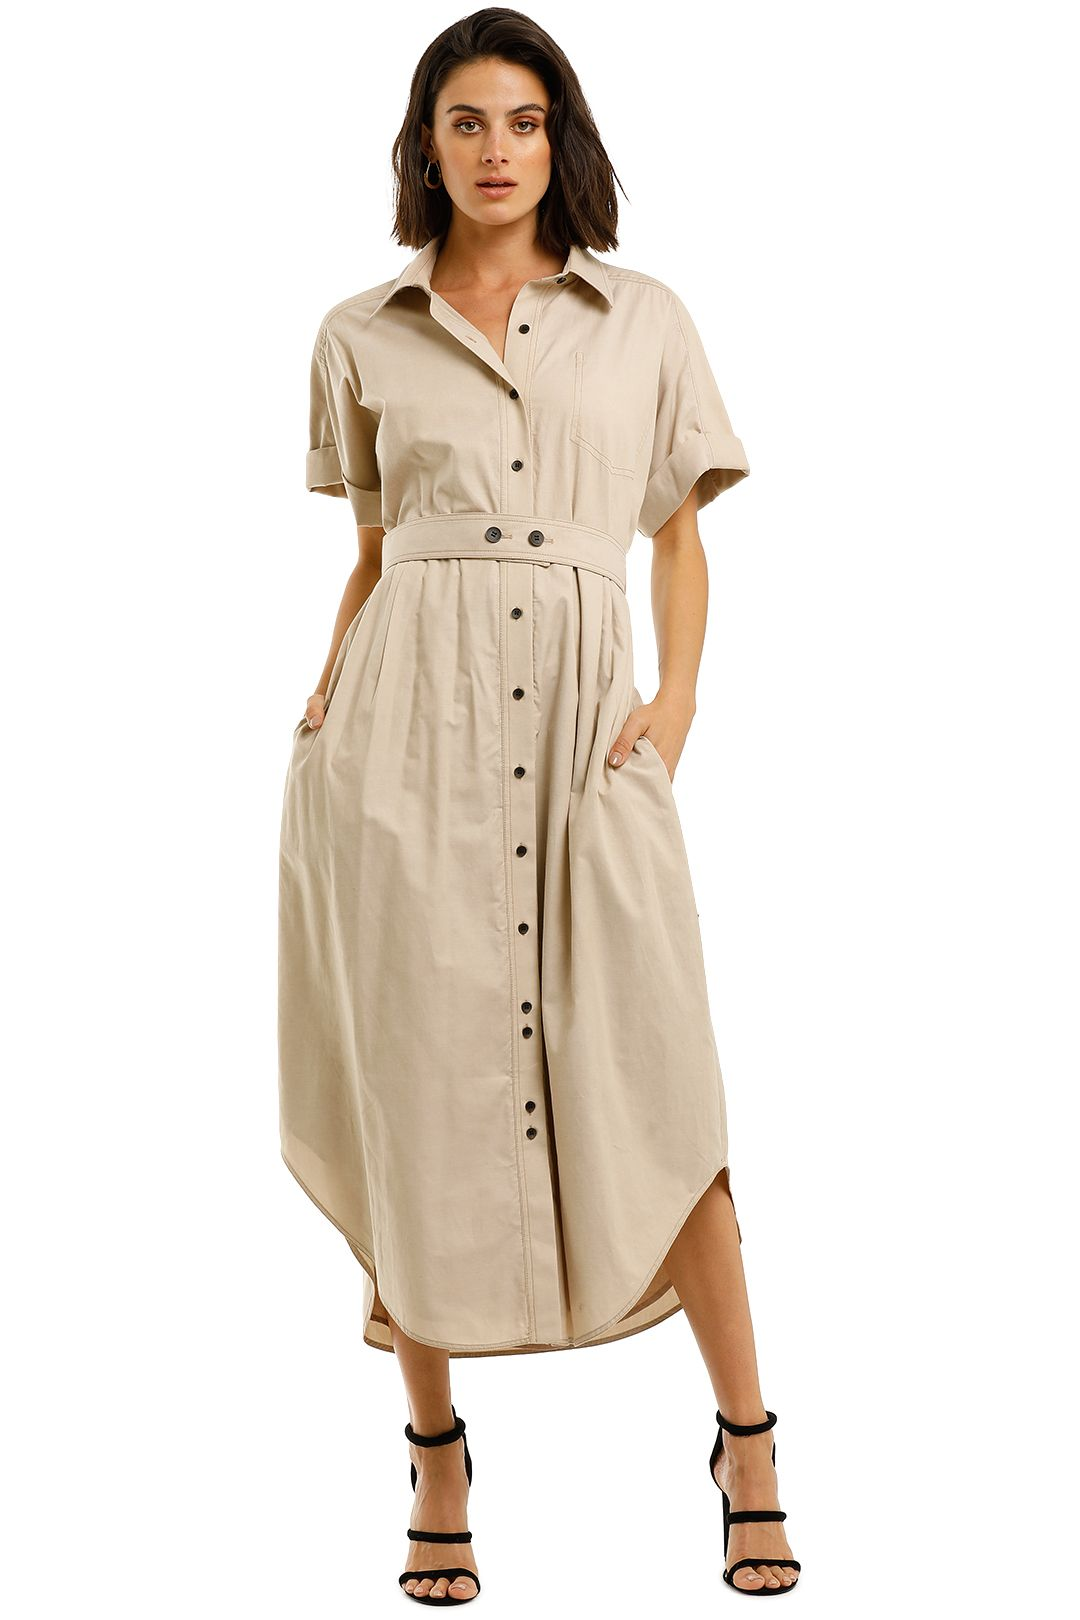 C&M-Camilla-And-Marc-London-Shirt-Dress-Buff-Front